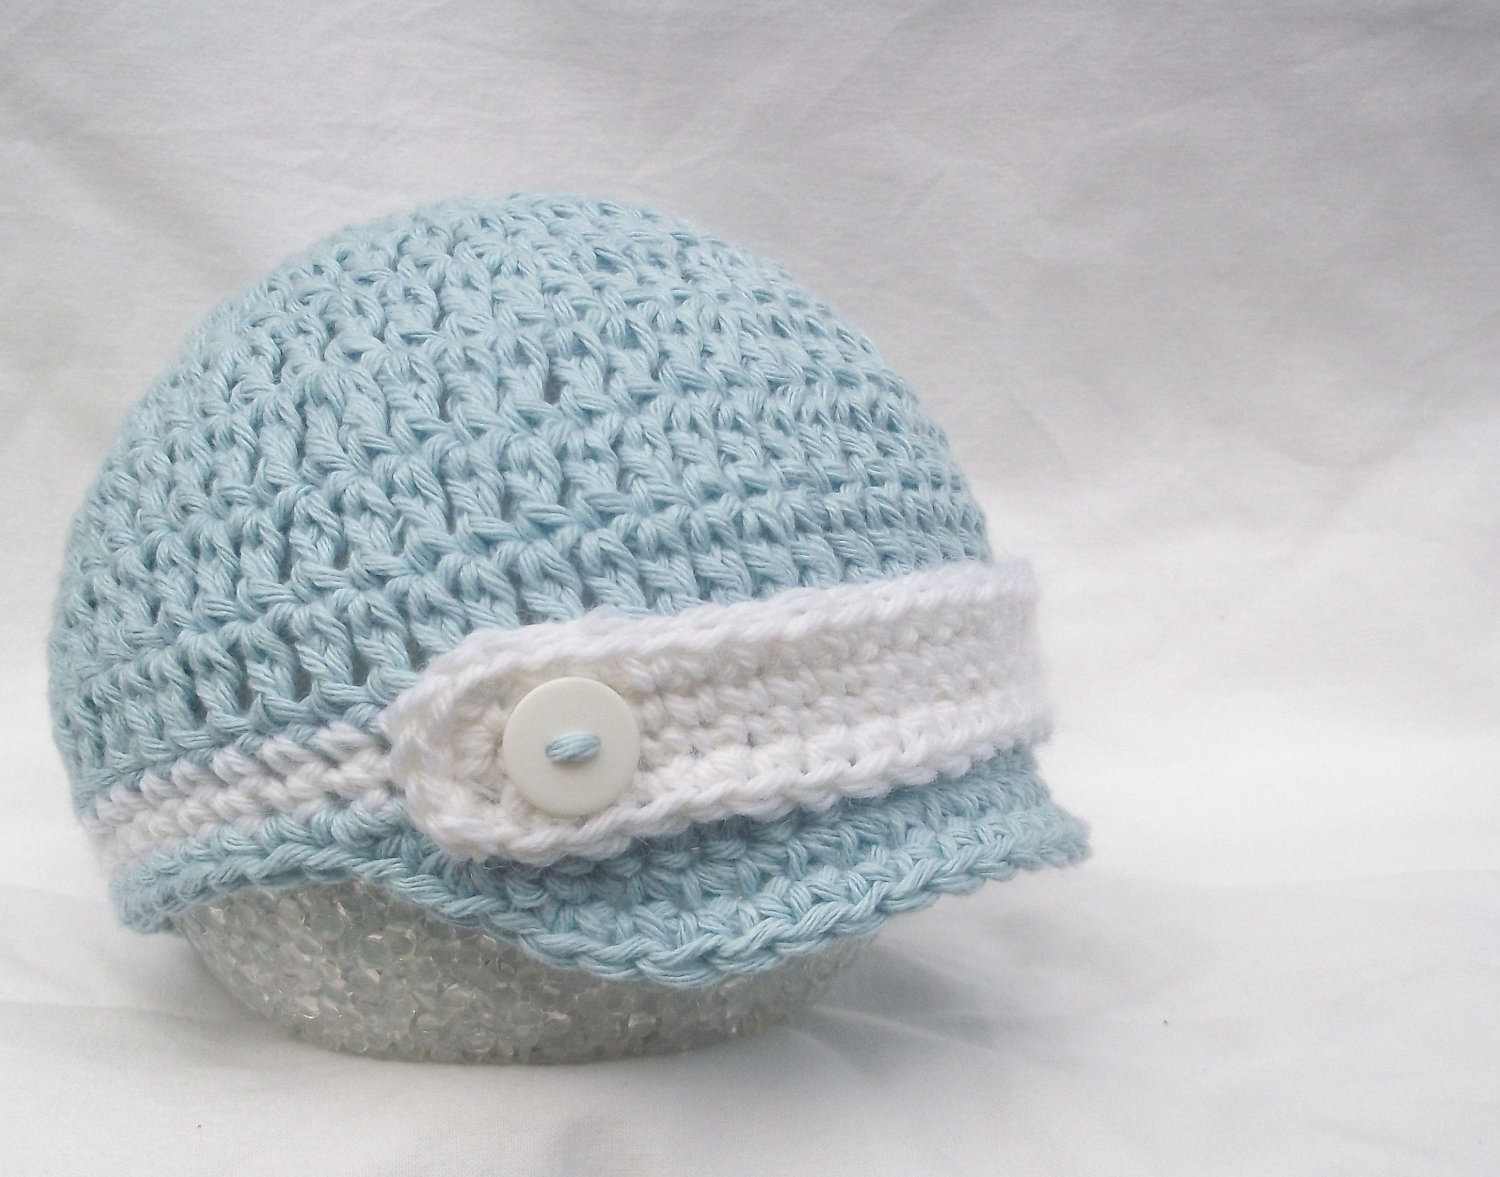 Crochet Newborn : newborn baby boy crochet hat Car Tuning